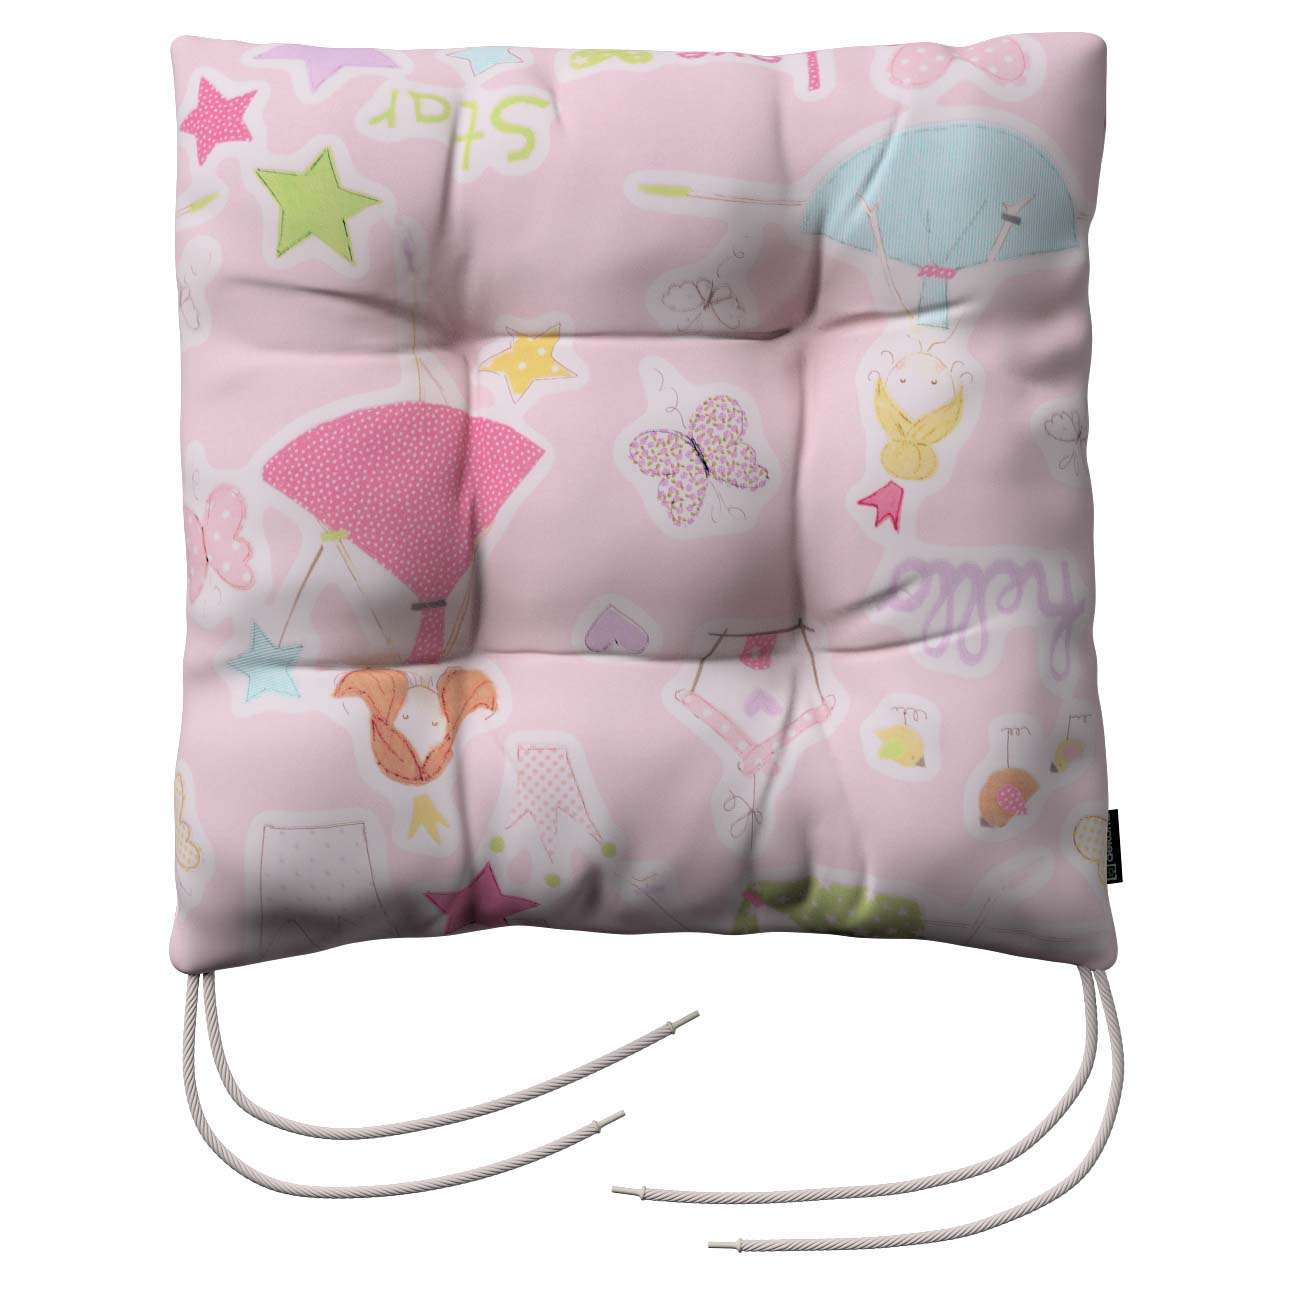 Jack seat pad with ties in collection Little World, fabric: 141-50